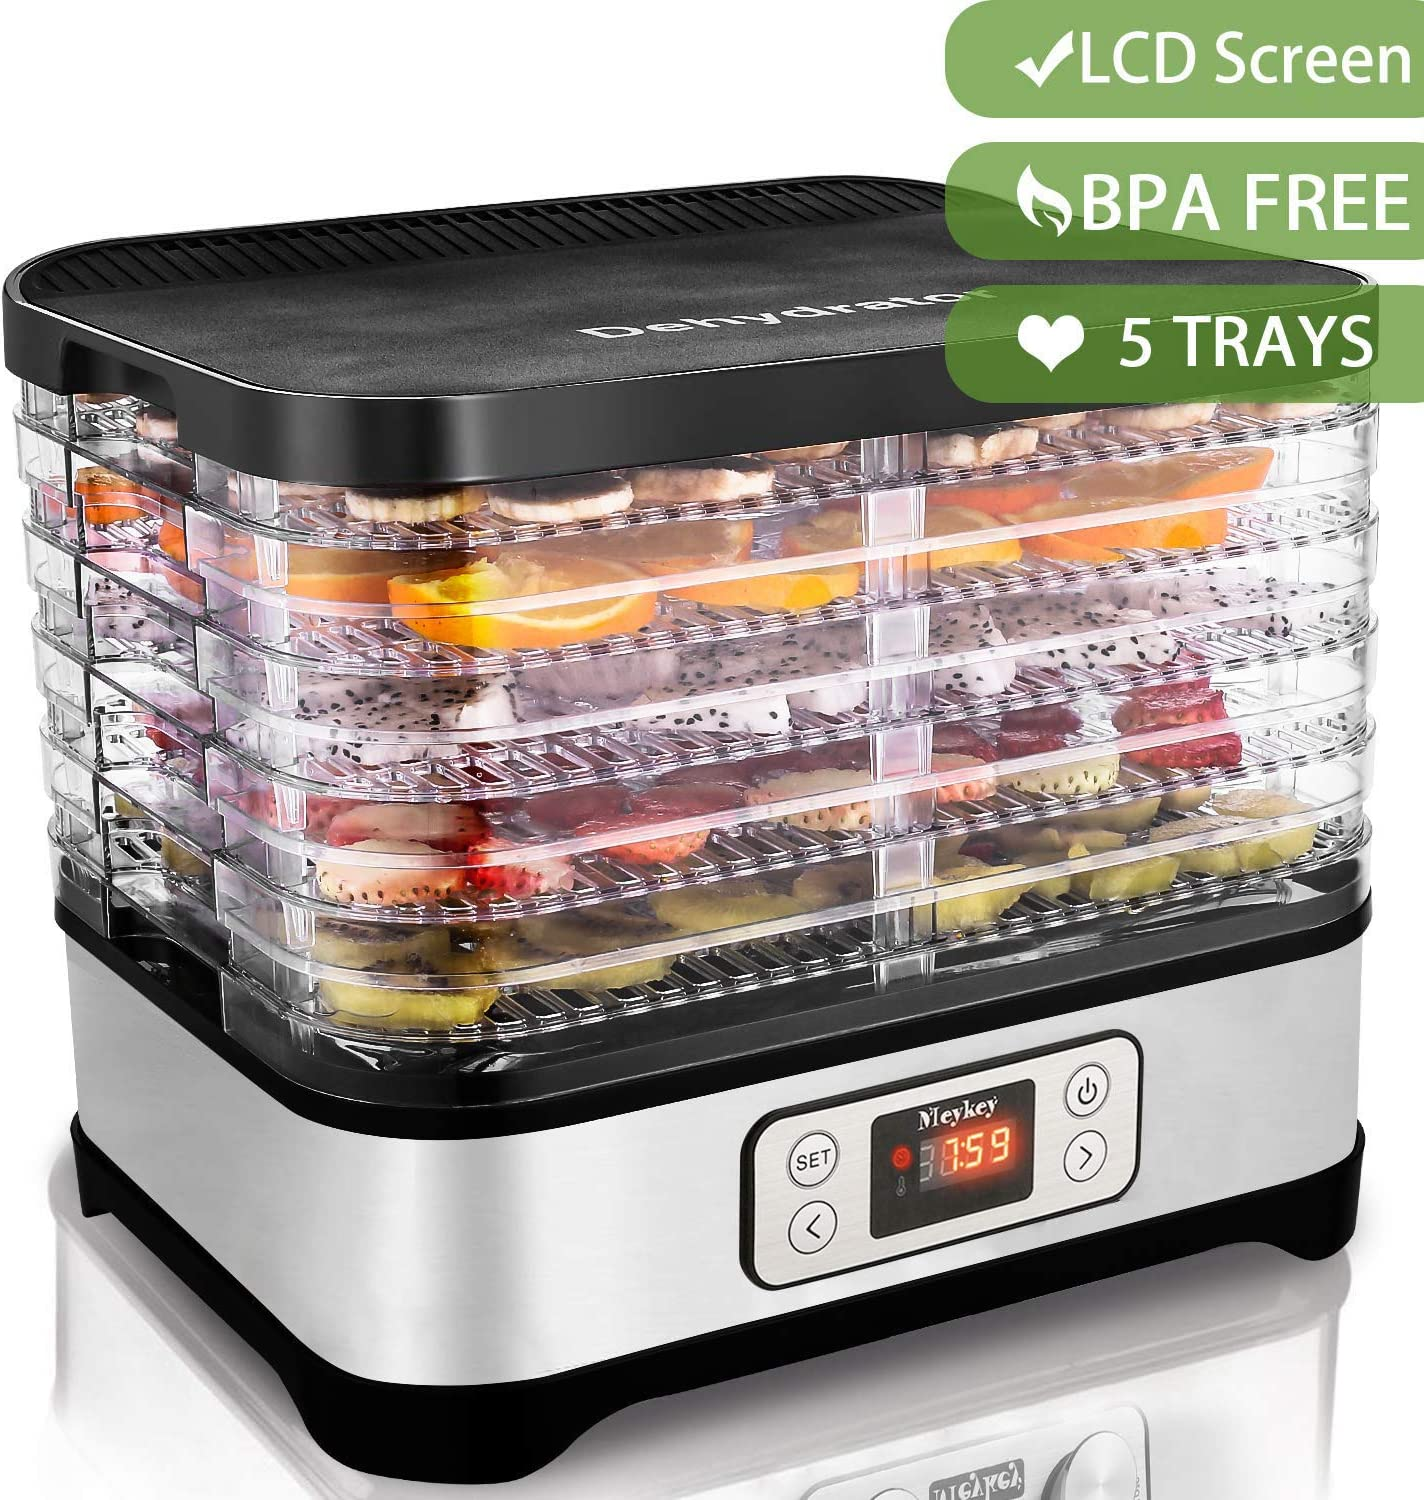 Electric Food Dehydrator Machine with 5 BPA Free Trays, Digital Timer and Temperature Control for Beef Jerky, Fruit Leather, Herbs